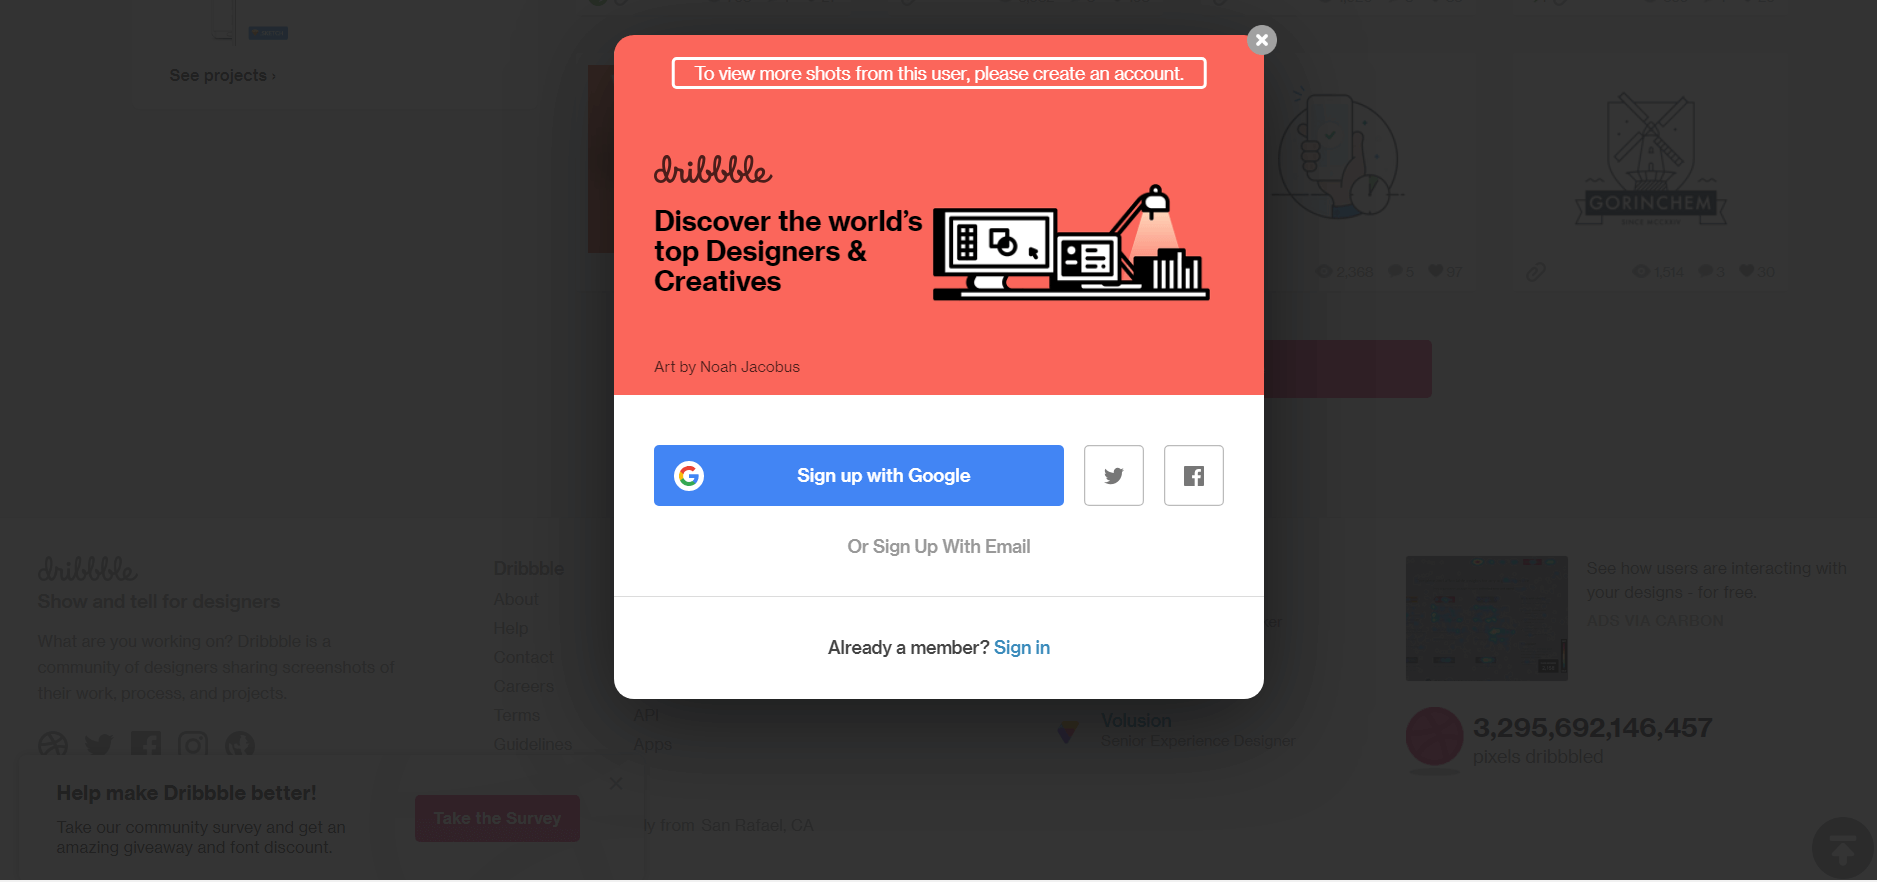 Dribbble cuts short your reading to make you register